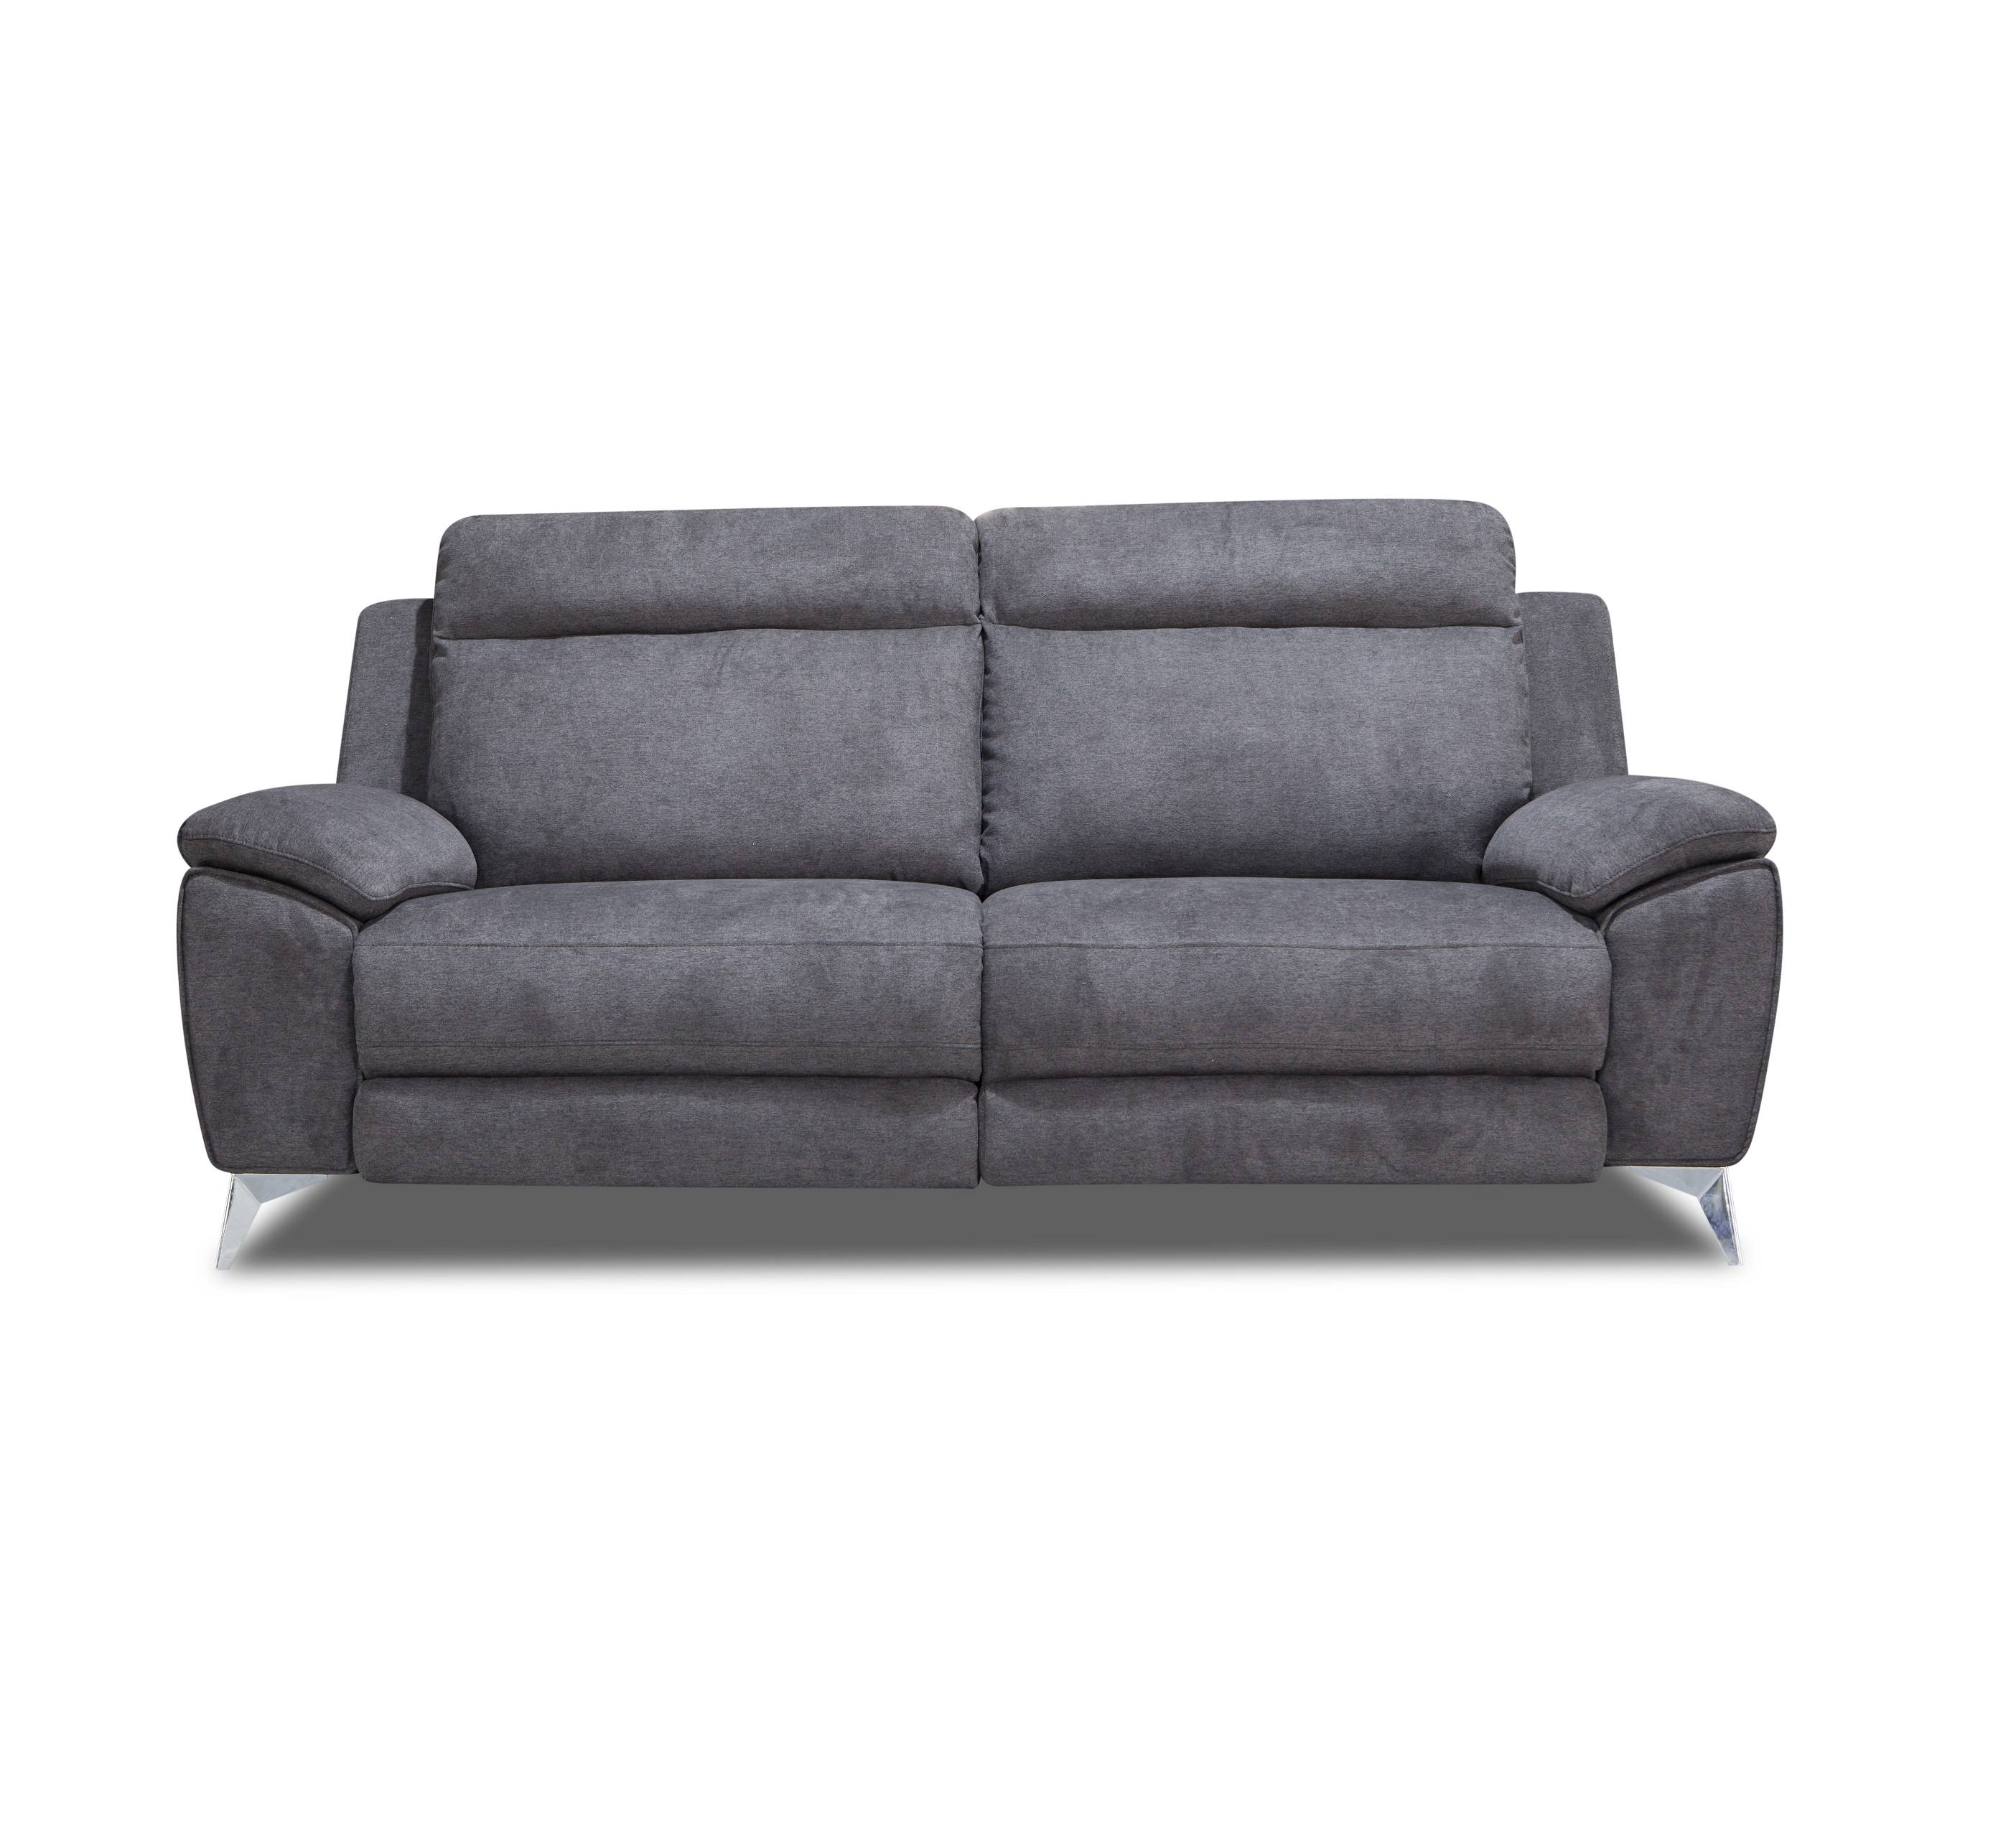 Modern leisure soft fabric power reclining loveseat